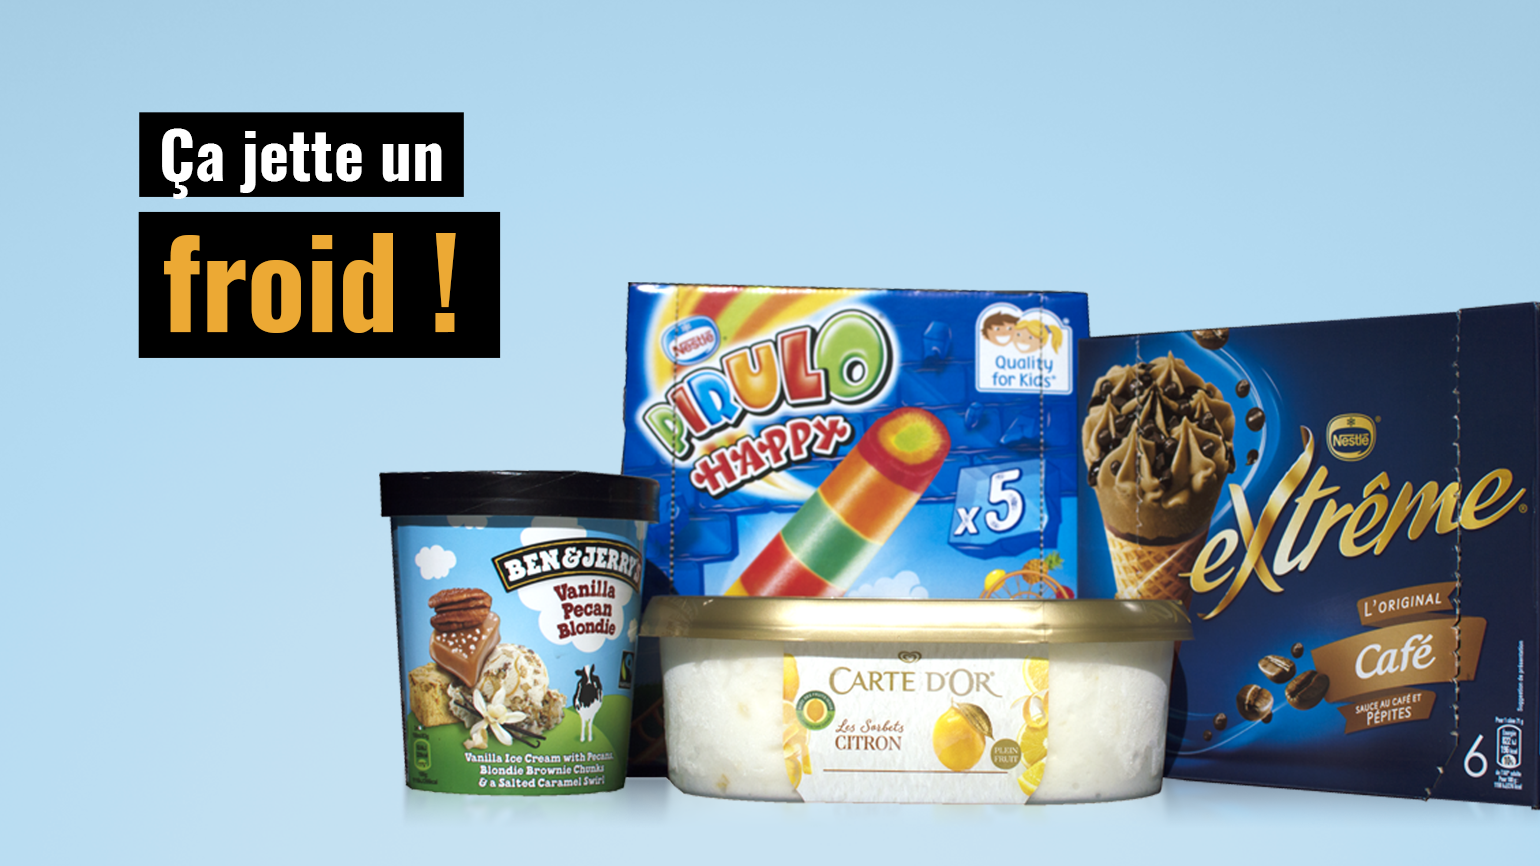 Glaces_foodwatch_CAMPAGNE_NA_1540x866.pn